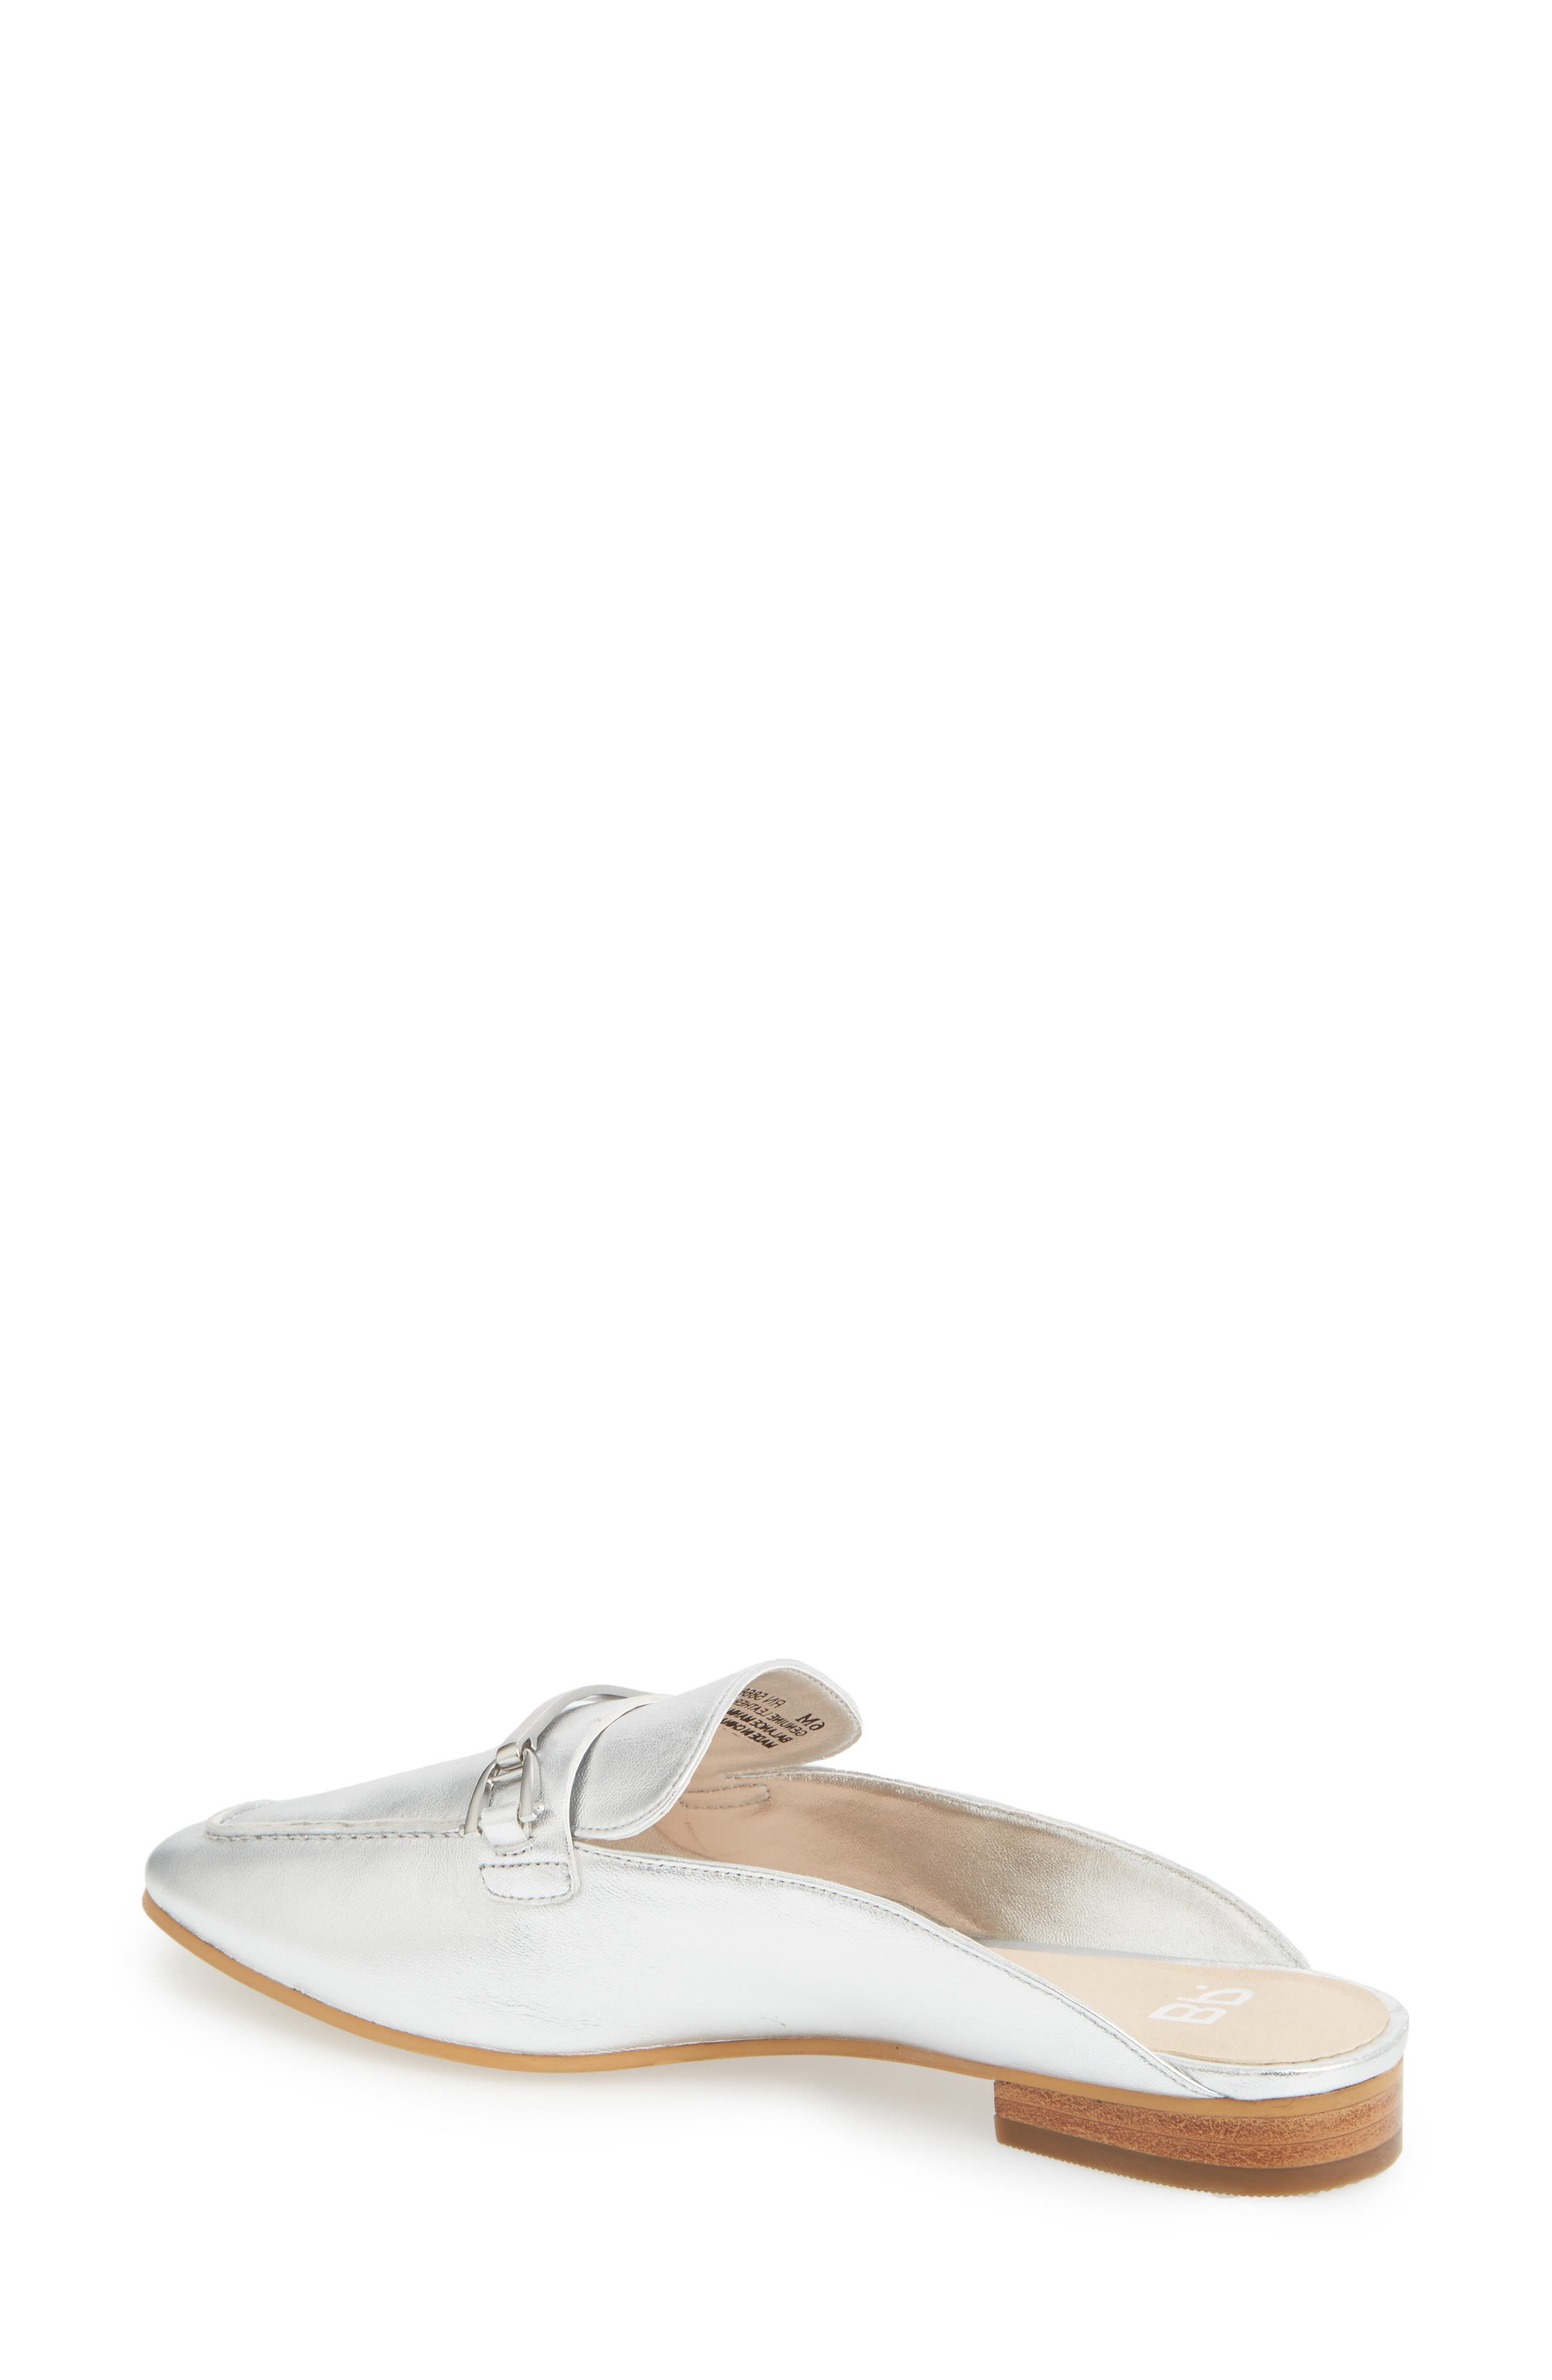 Milo Loafer Mule,                             Alternate thumbnail 2, color,                             Silver Metallic Leather